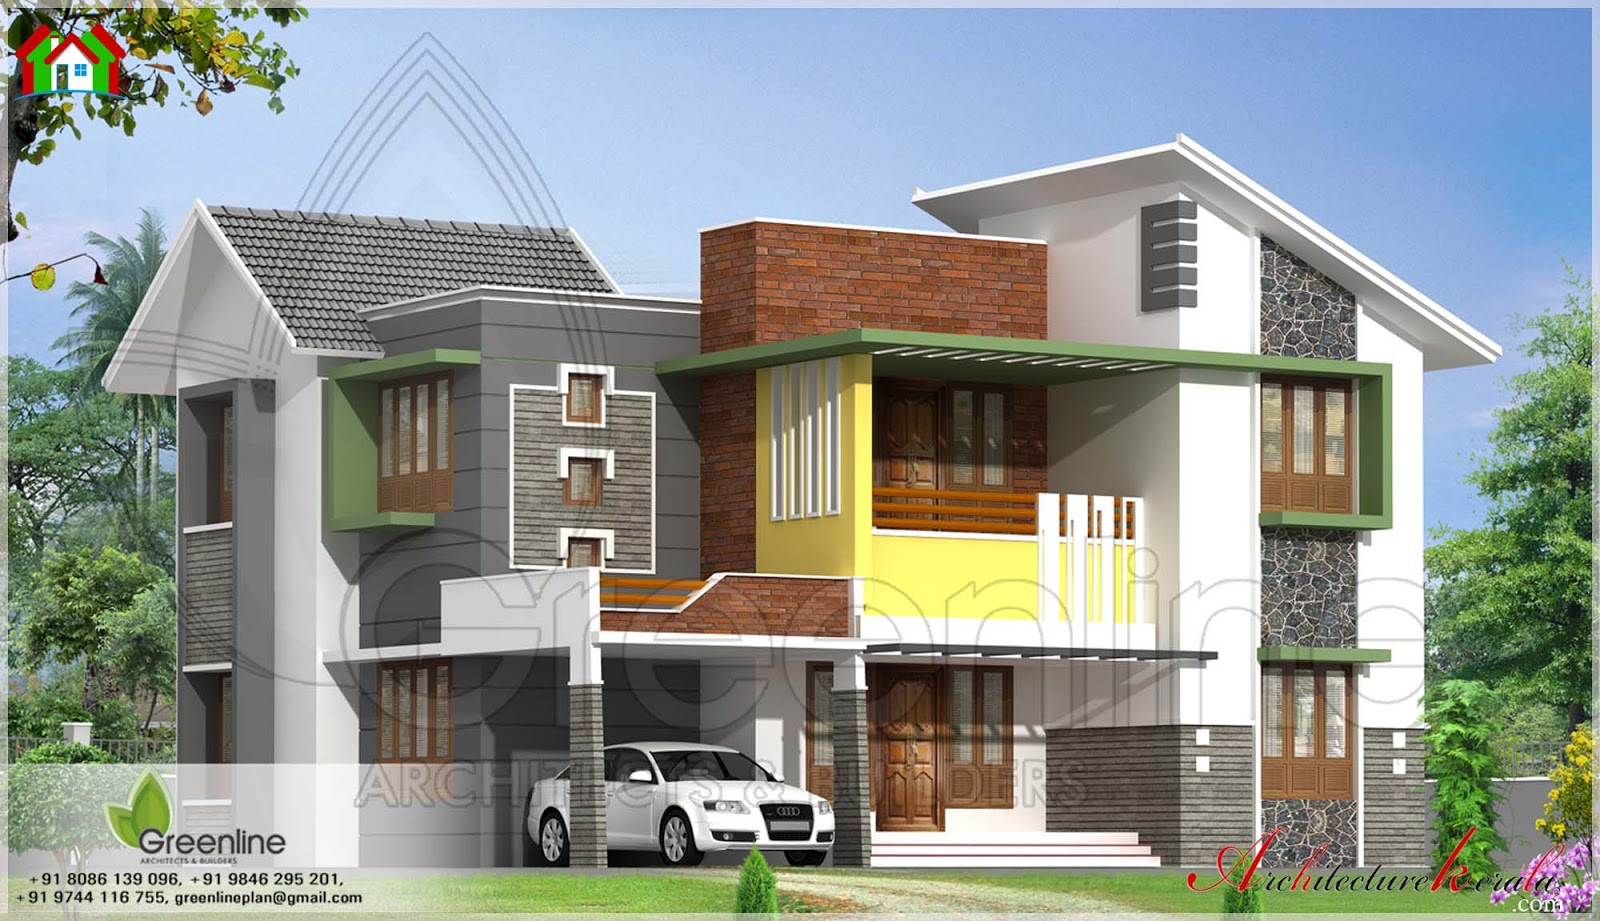 Modern style house elevation architecture kerala Indian modern home design images